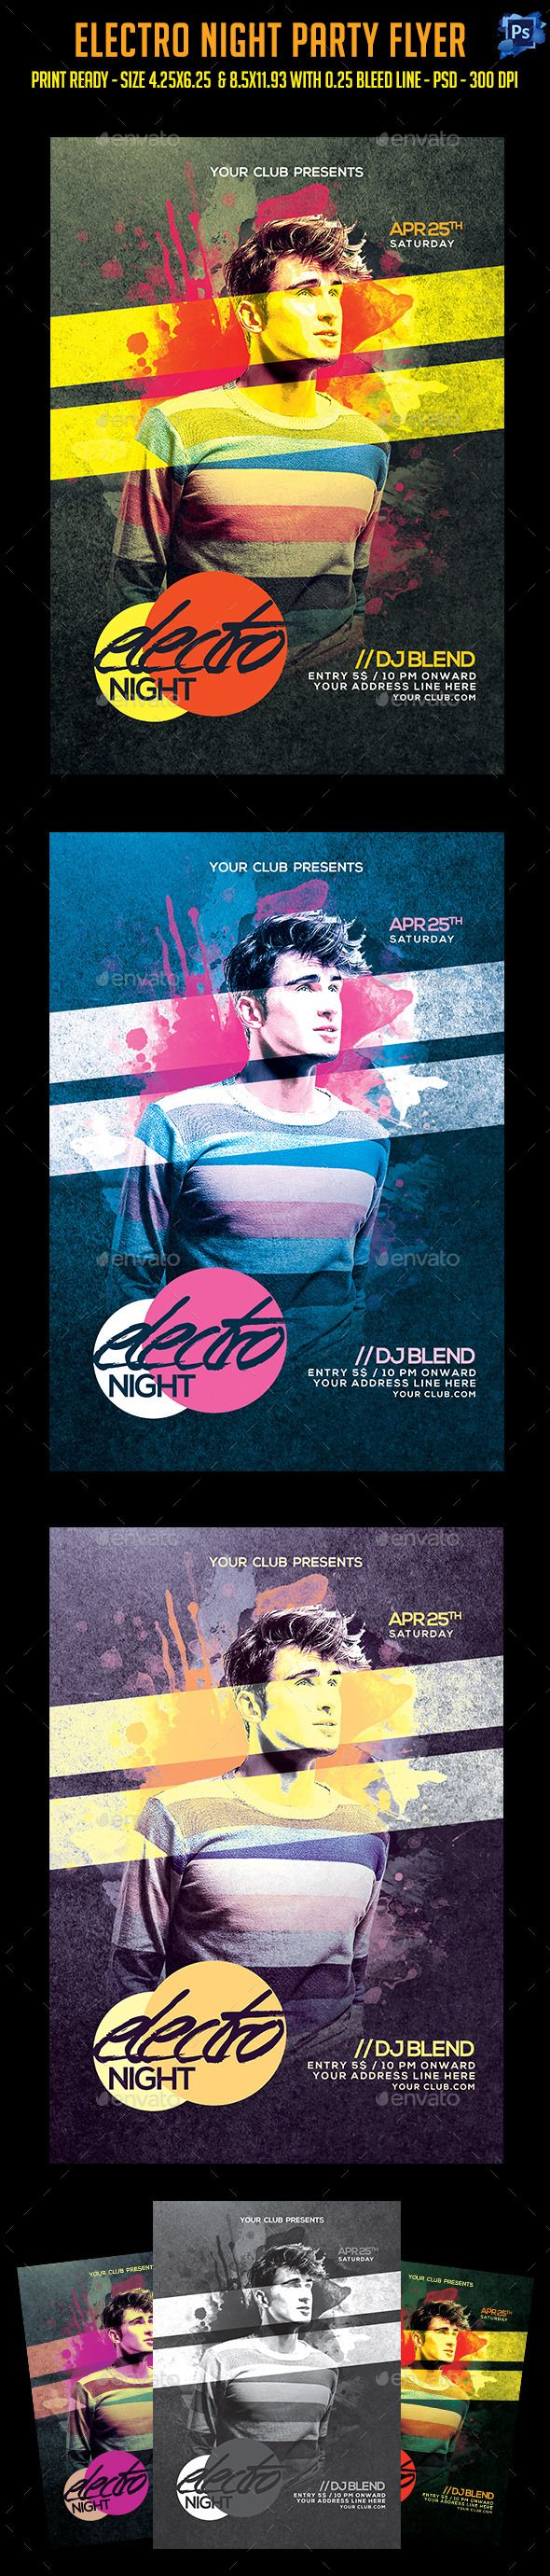 5s poster design - Electro Night Party Flyer